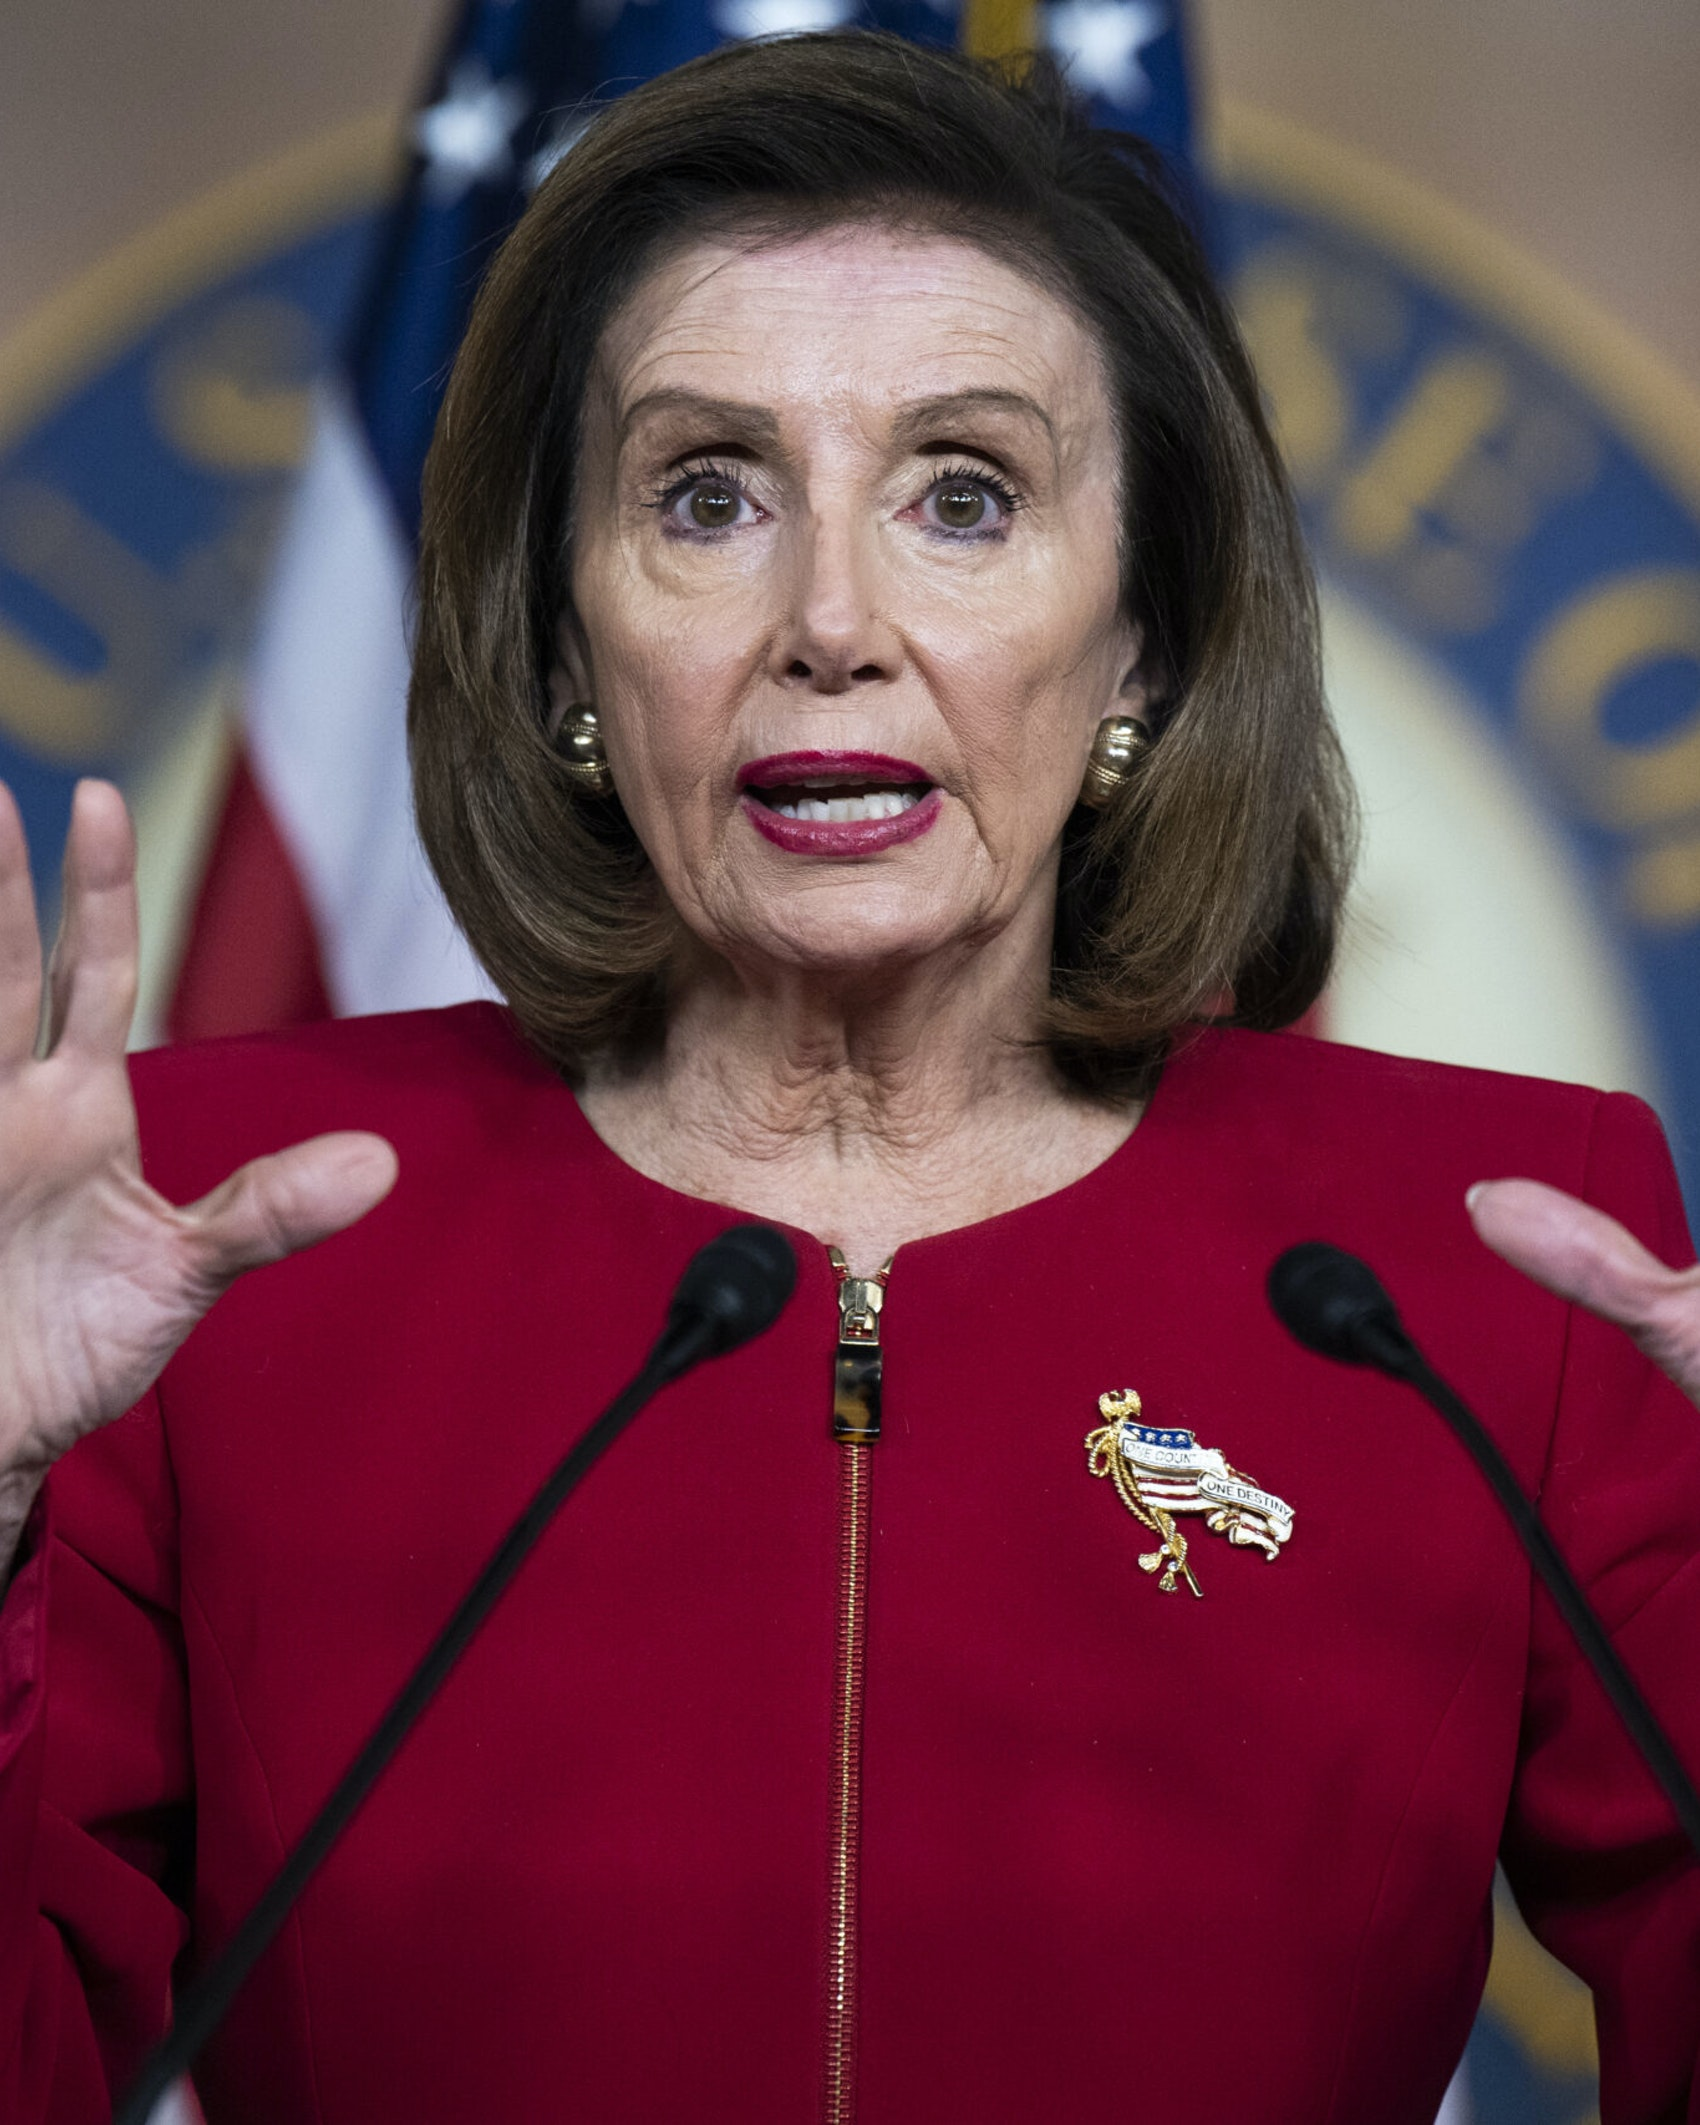 UNITED STATES - SEPTEMBER 8: Speaker of the House Nancy Pelosi, D-Calif., conducts her weekly news conference in the Capitol Visitor Center on Wednesday, September 8, 2021. (Photo By Tom Williams/CQ-Roll Call, Inc via Getty Images)